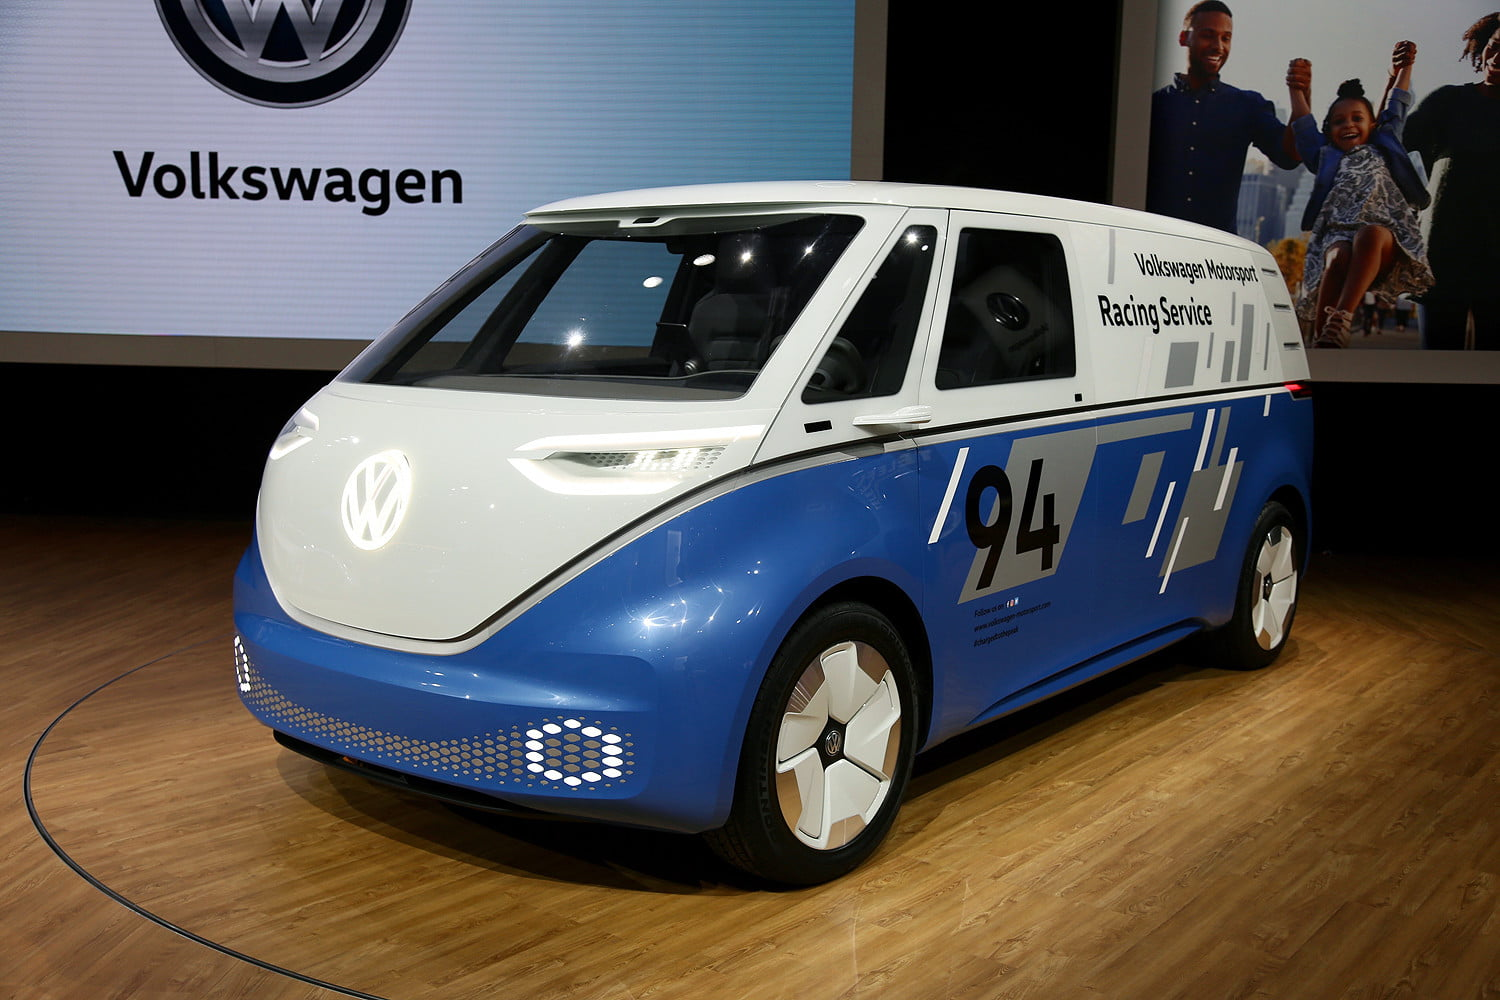 94598eae45 Volkswagen ID Buzz Cargo Will Report for Delivery Duty in 2022 ...